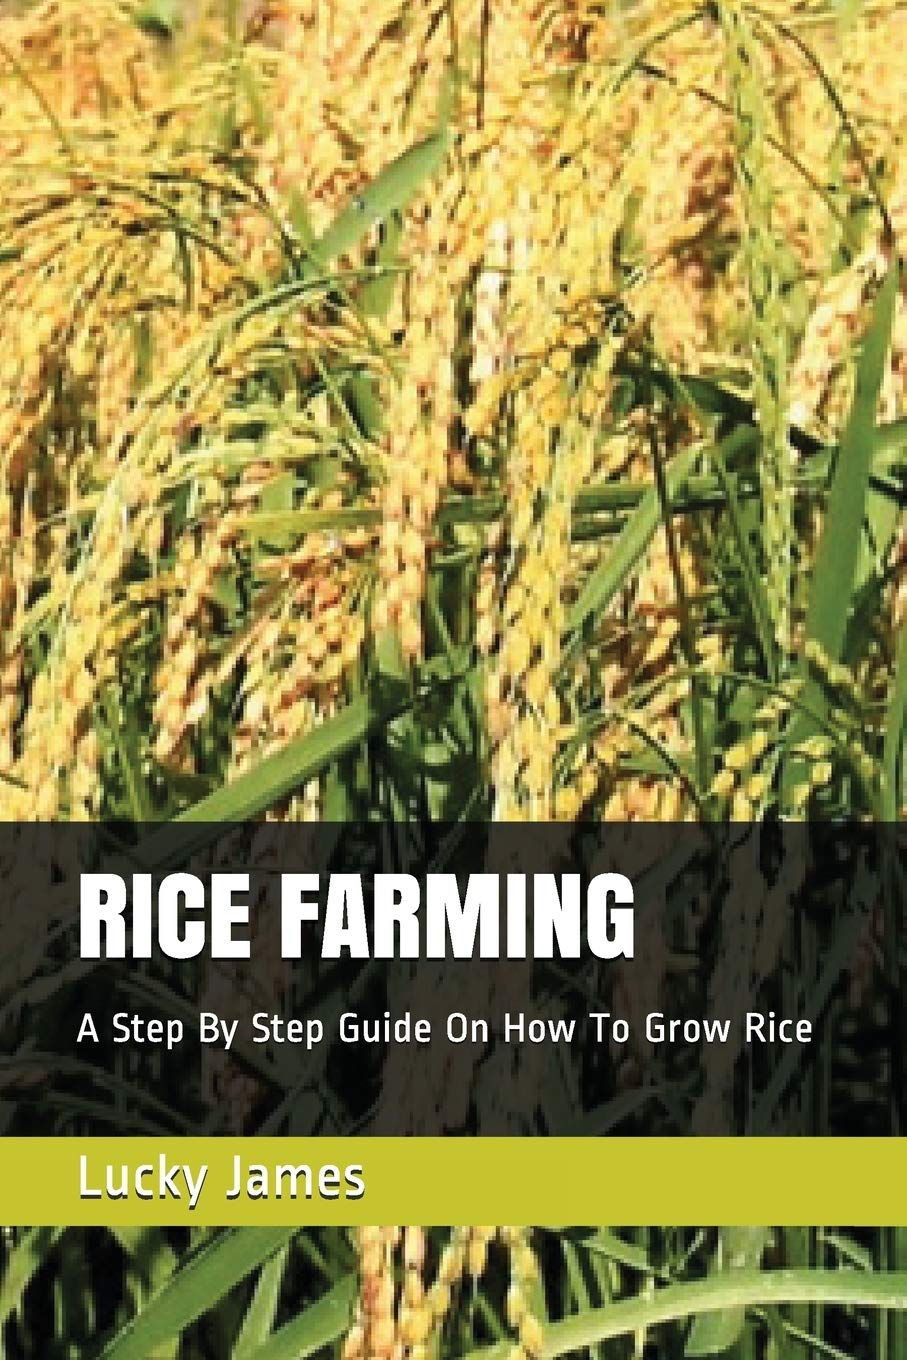 Rice Farming A Step By Step Guide On How To Grow Rice James Lucky 9781973321156 Amazon Com Books